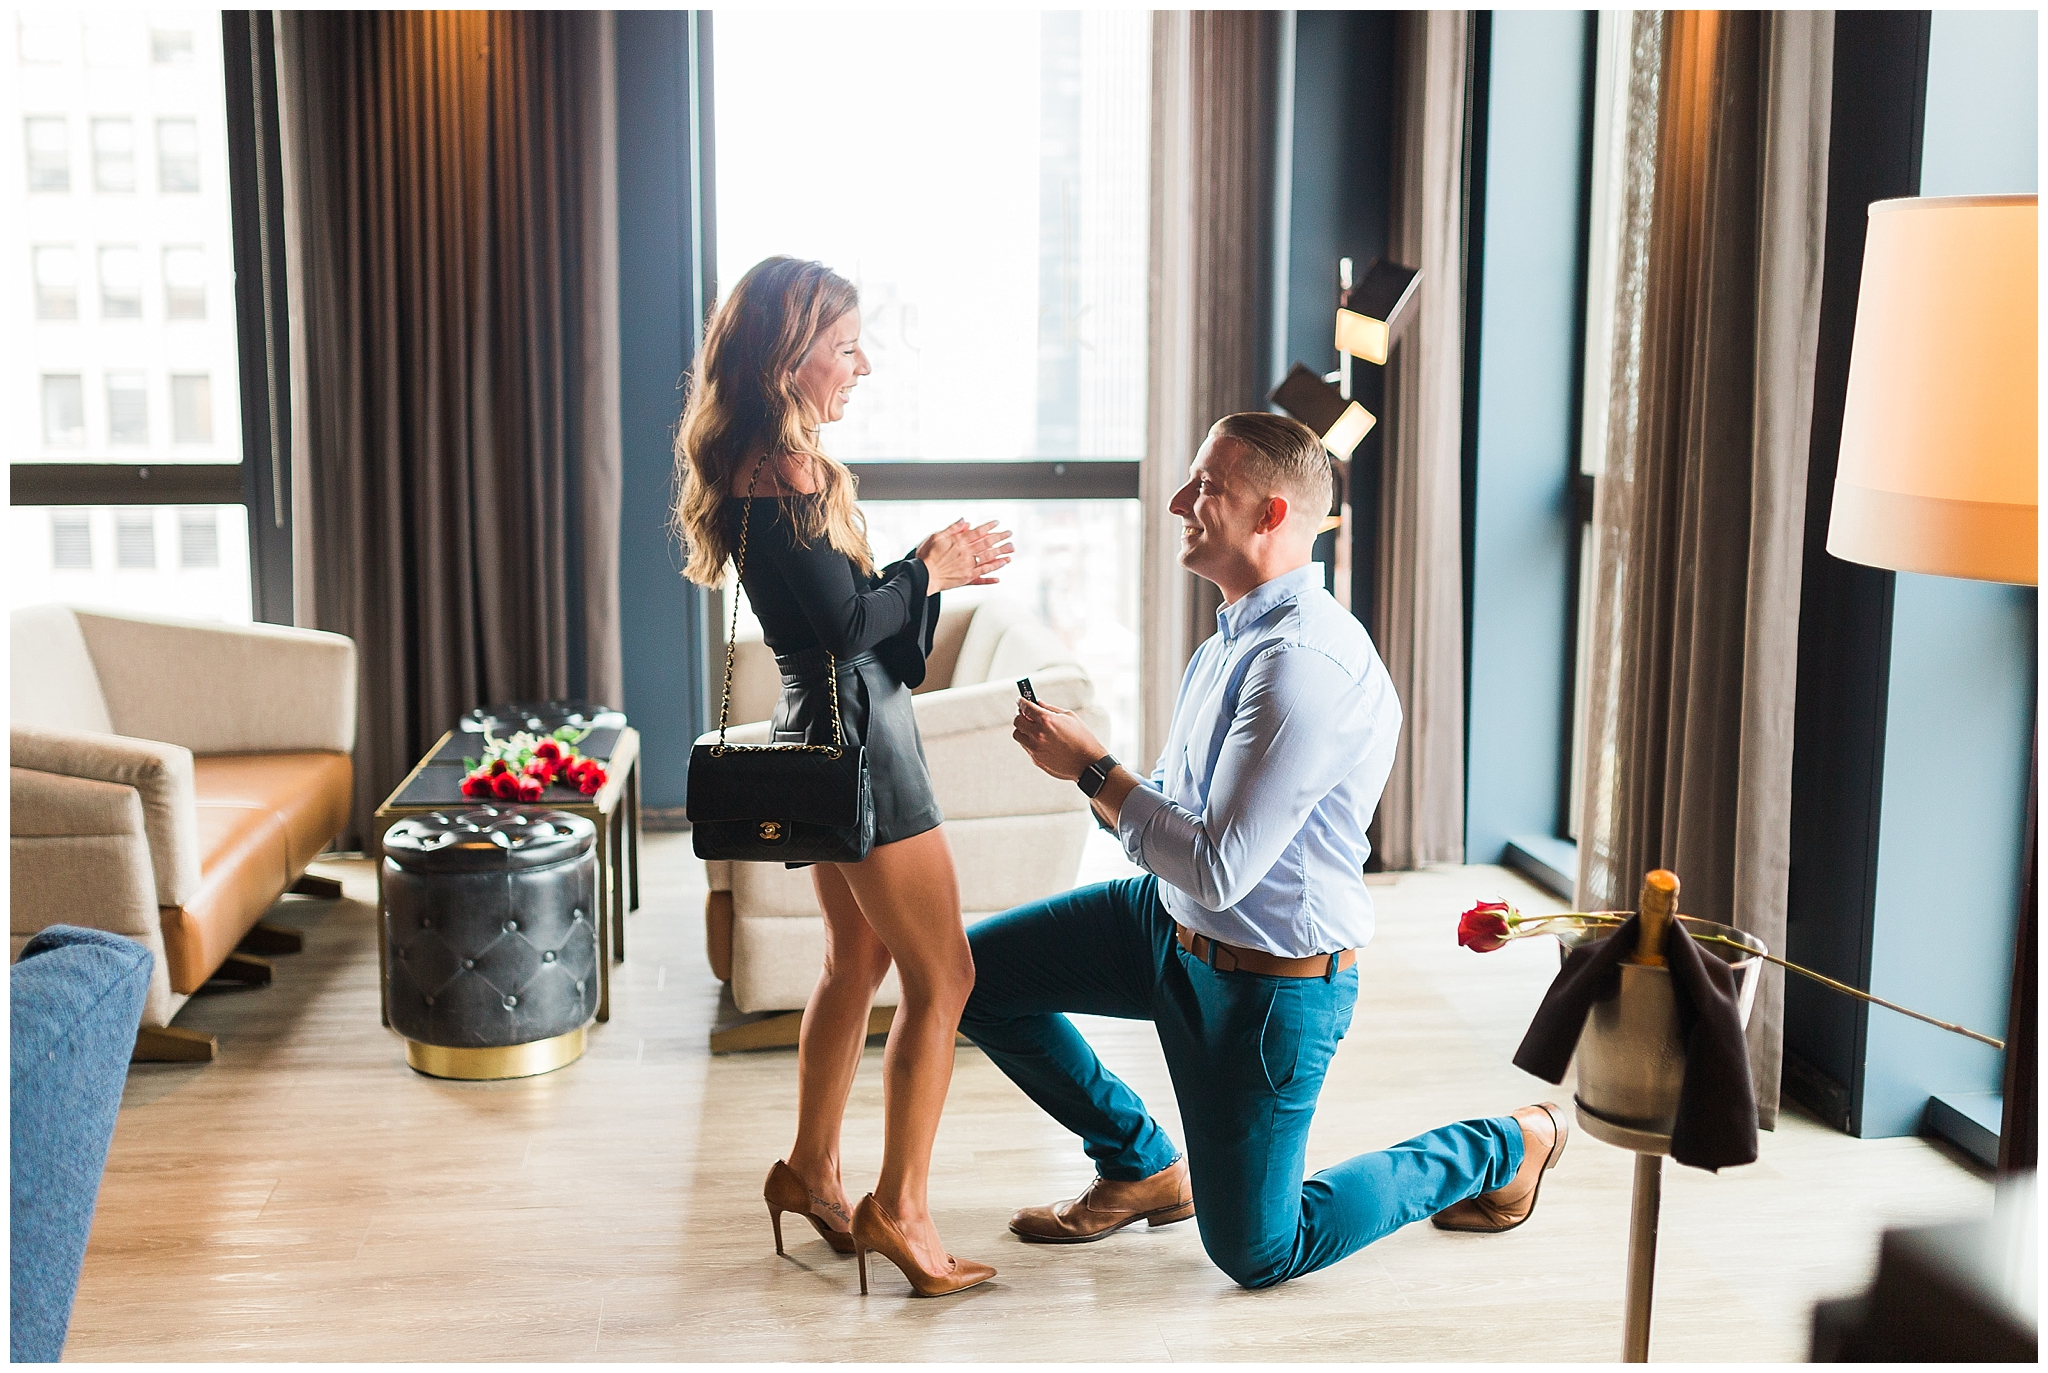 03. This romantic af proposal at the Skylark. - Victoria and Dan — The Skylark New York